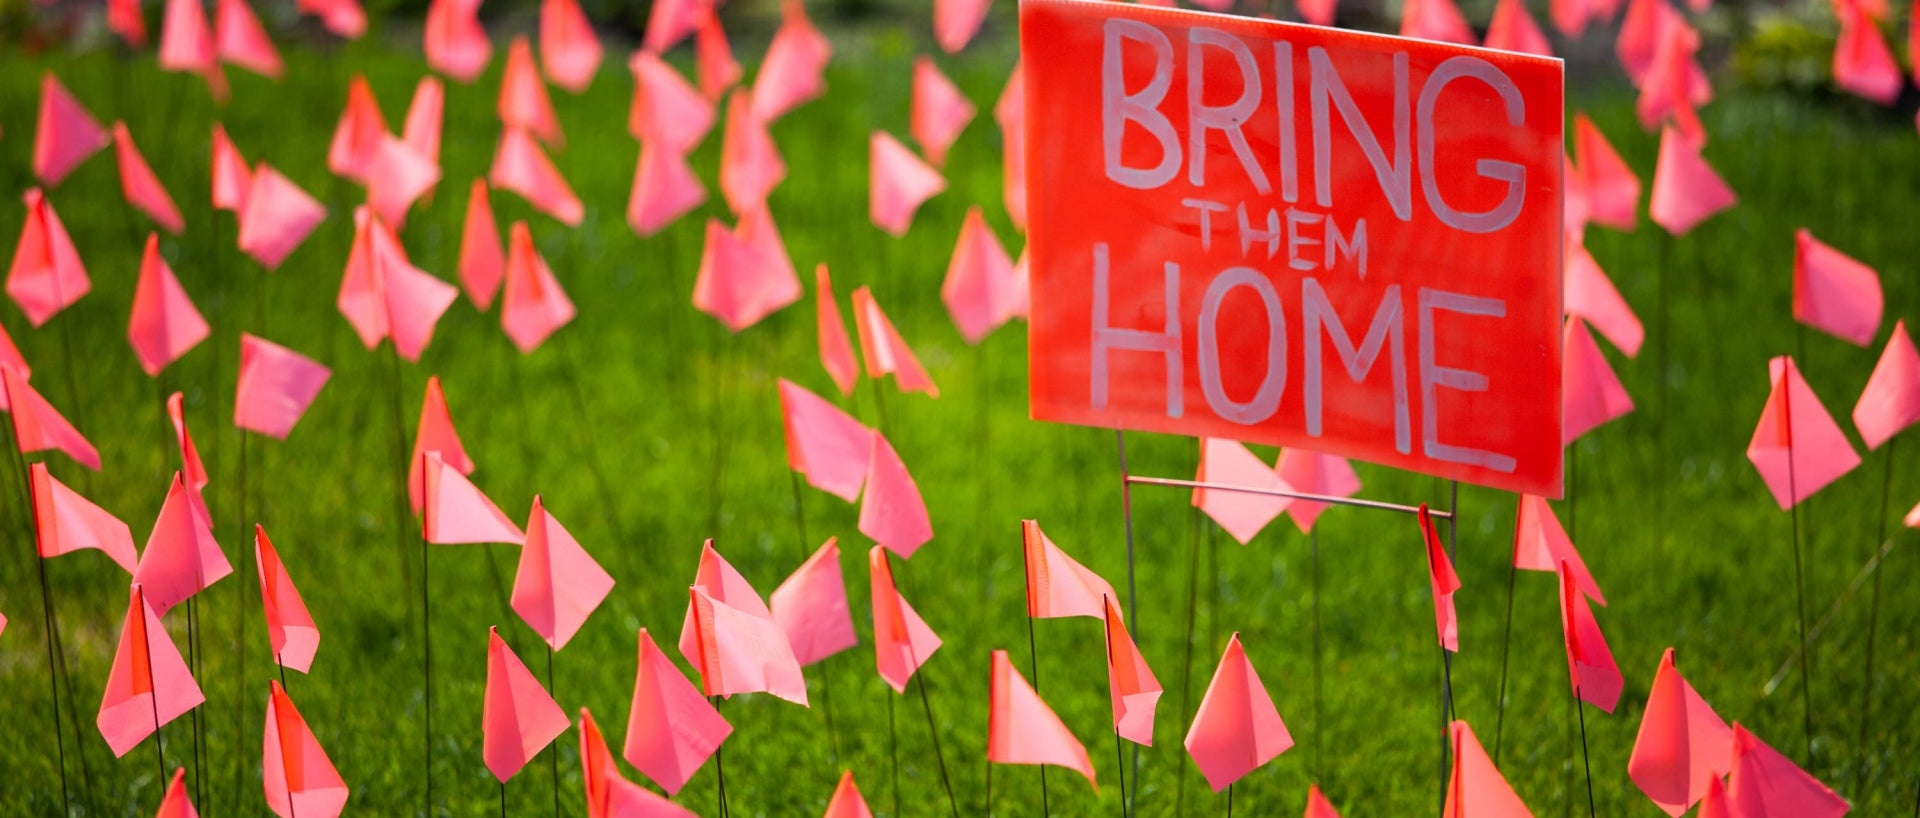 Miniature orange flags symbolizing missing Indigenous children were placed in front of the Manitoba legislature earlier this month as the country continues to mourn the discovery of mass graves on former residential school grounds.